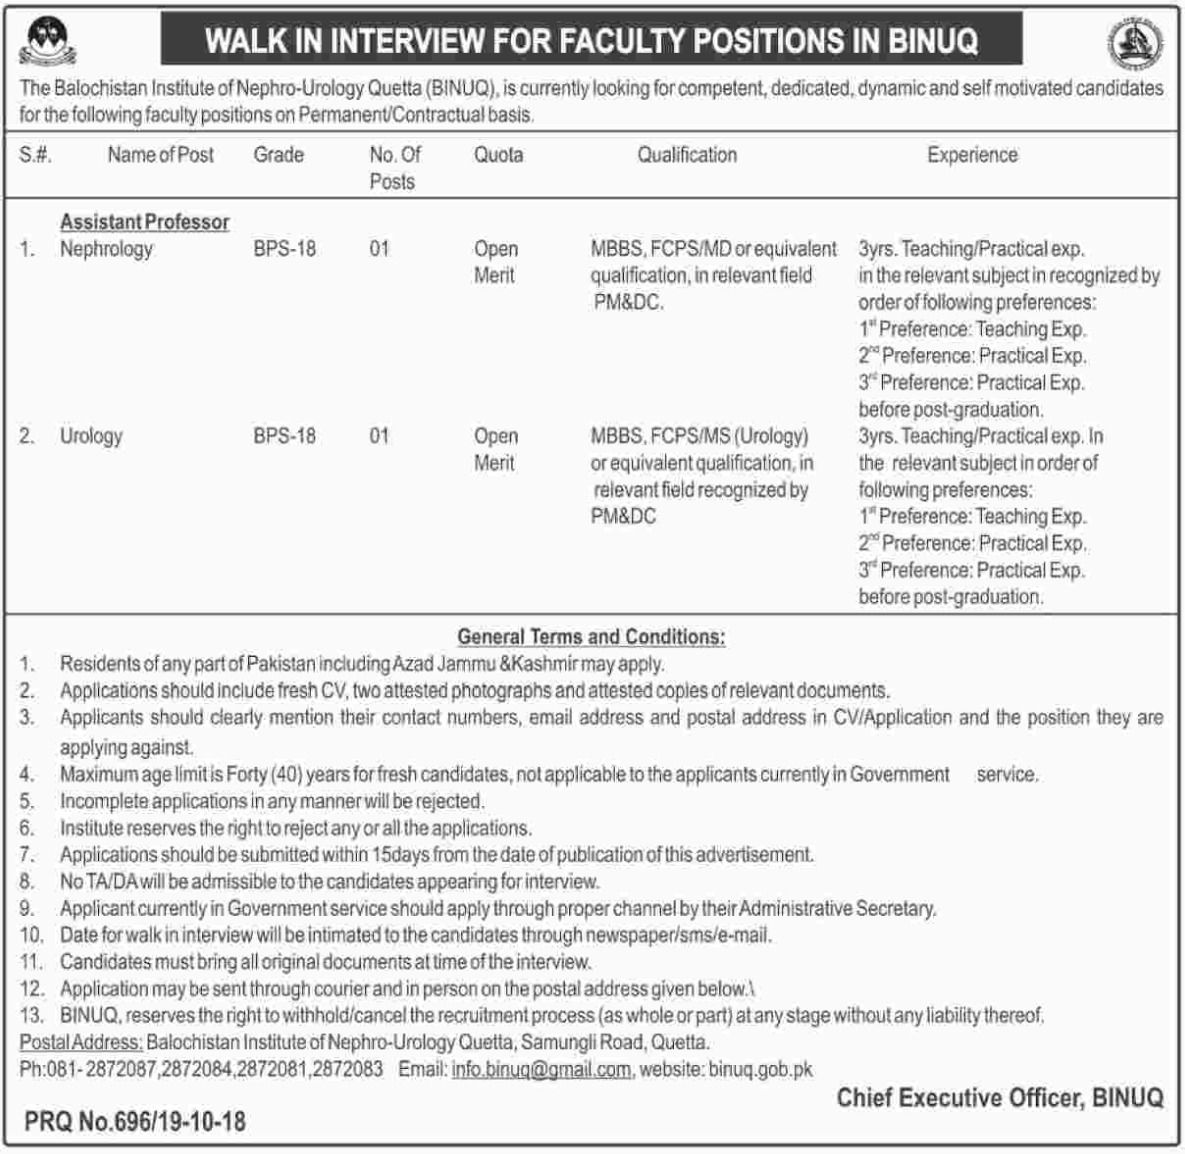 BINUQ Balochistan Institute of Nephro Urology Quetta Latest Jobs 2018